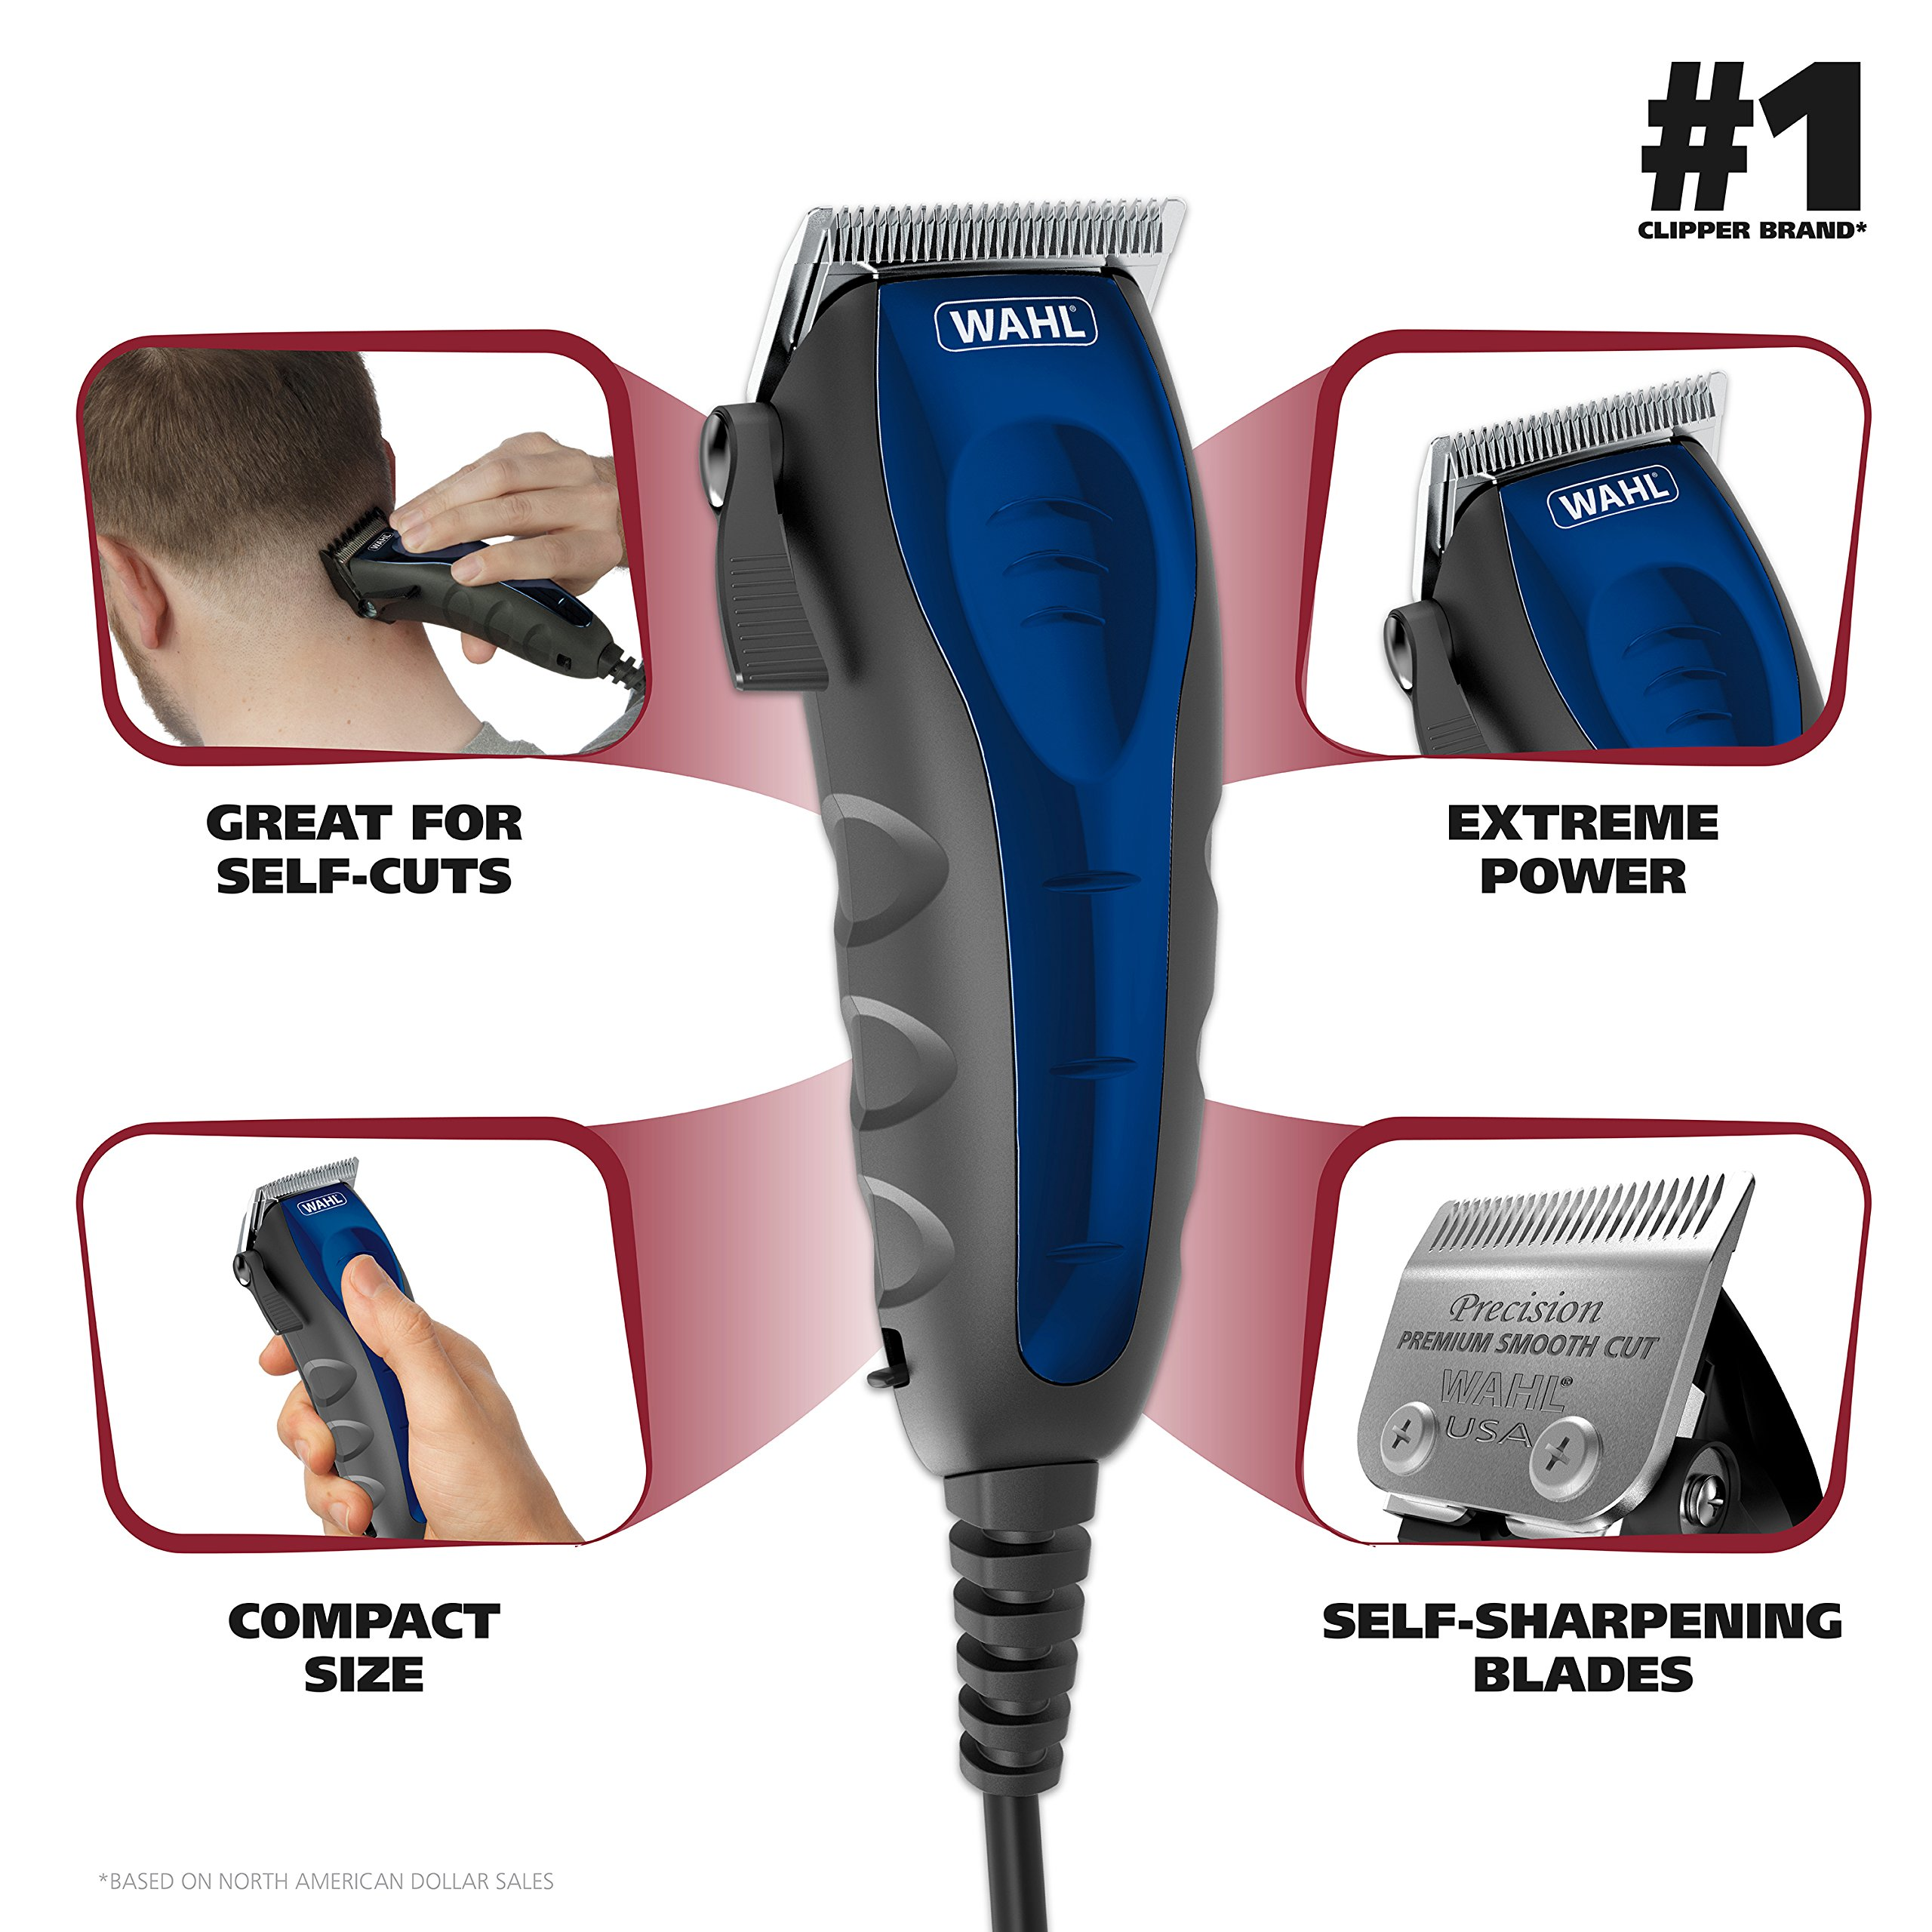 Wahl Clipper Self-Cut Haircutting Kit 79467 Compact Trimming and Personal Grooming Kit by WAHL (Image #2)